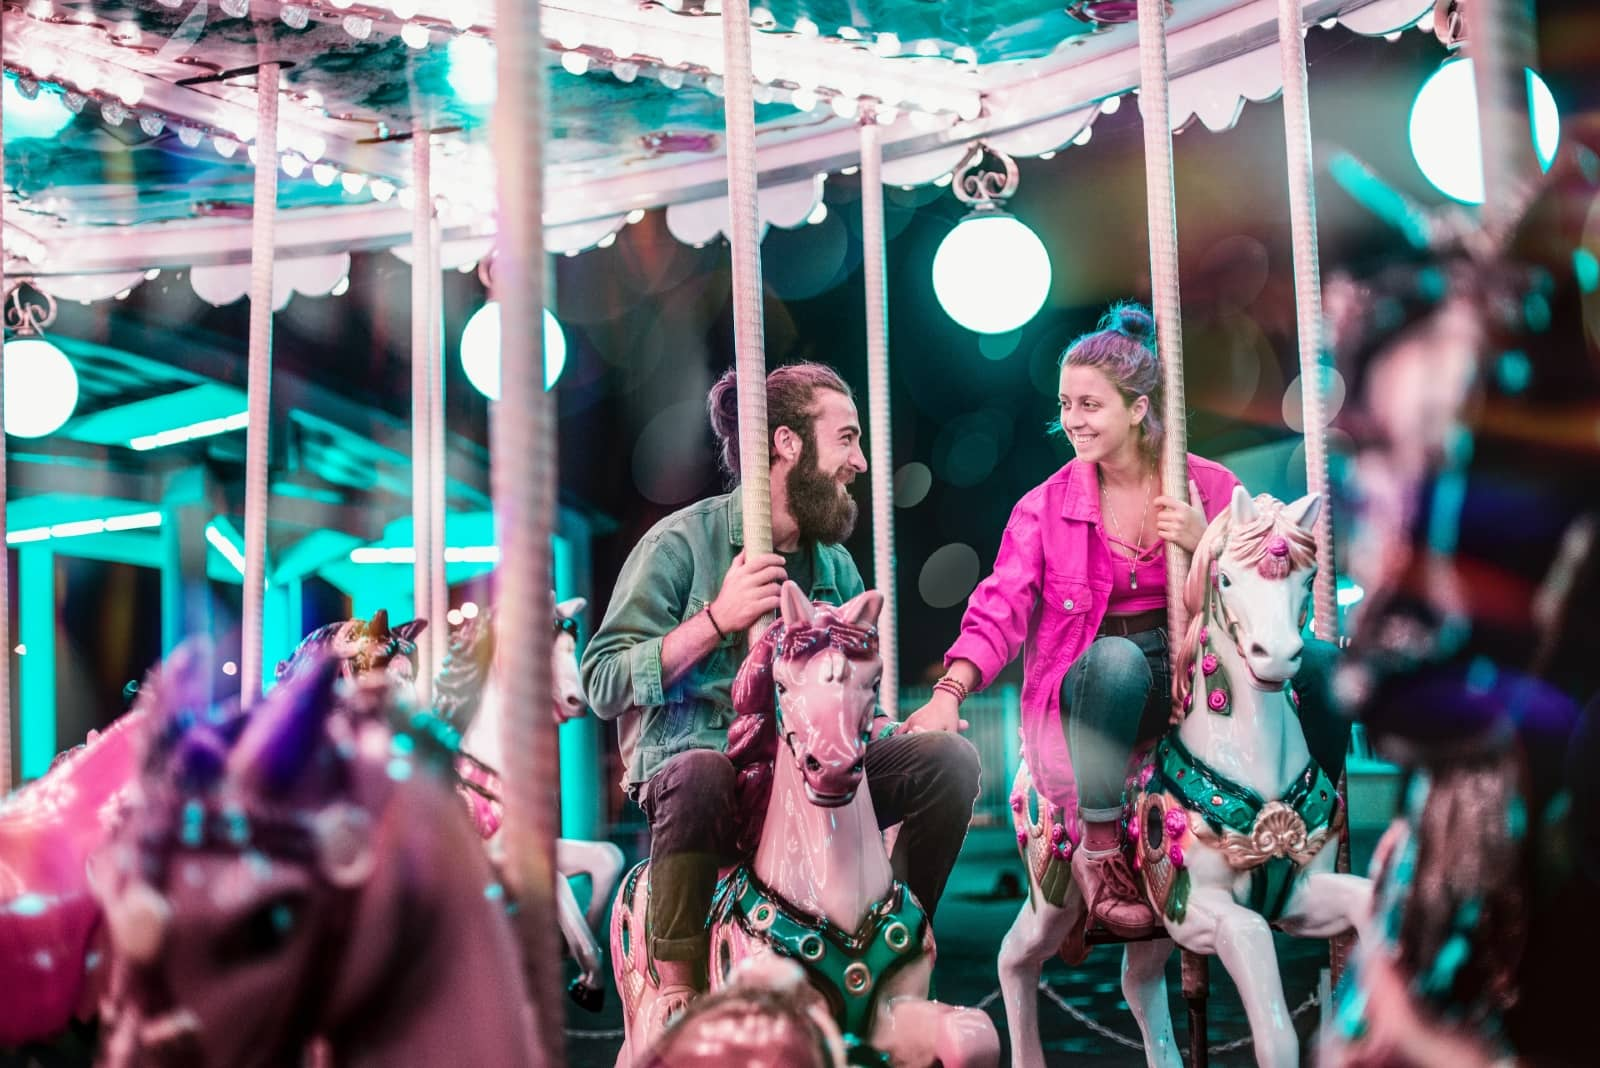 man and woman holding hands while riding a carousel